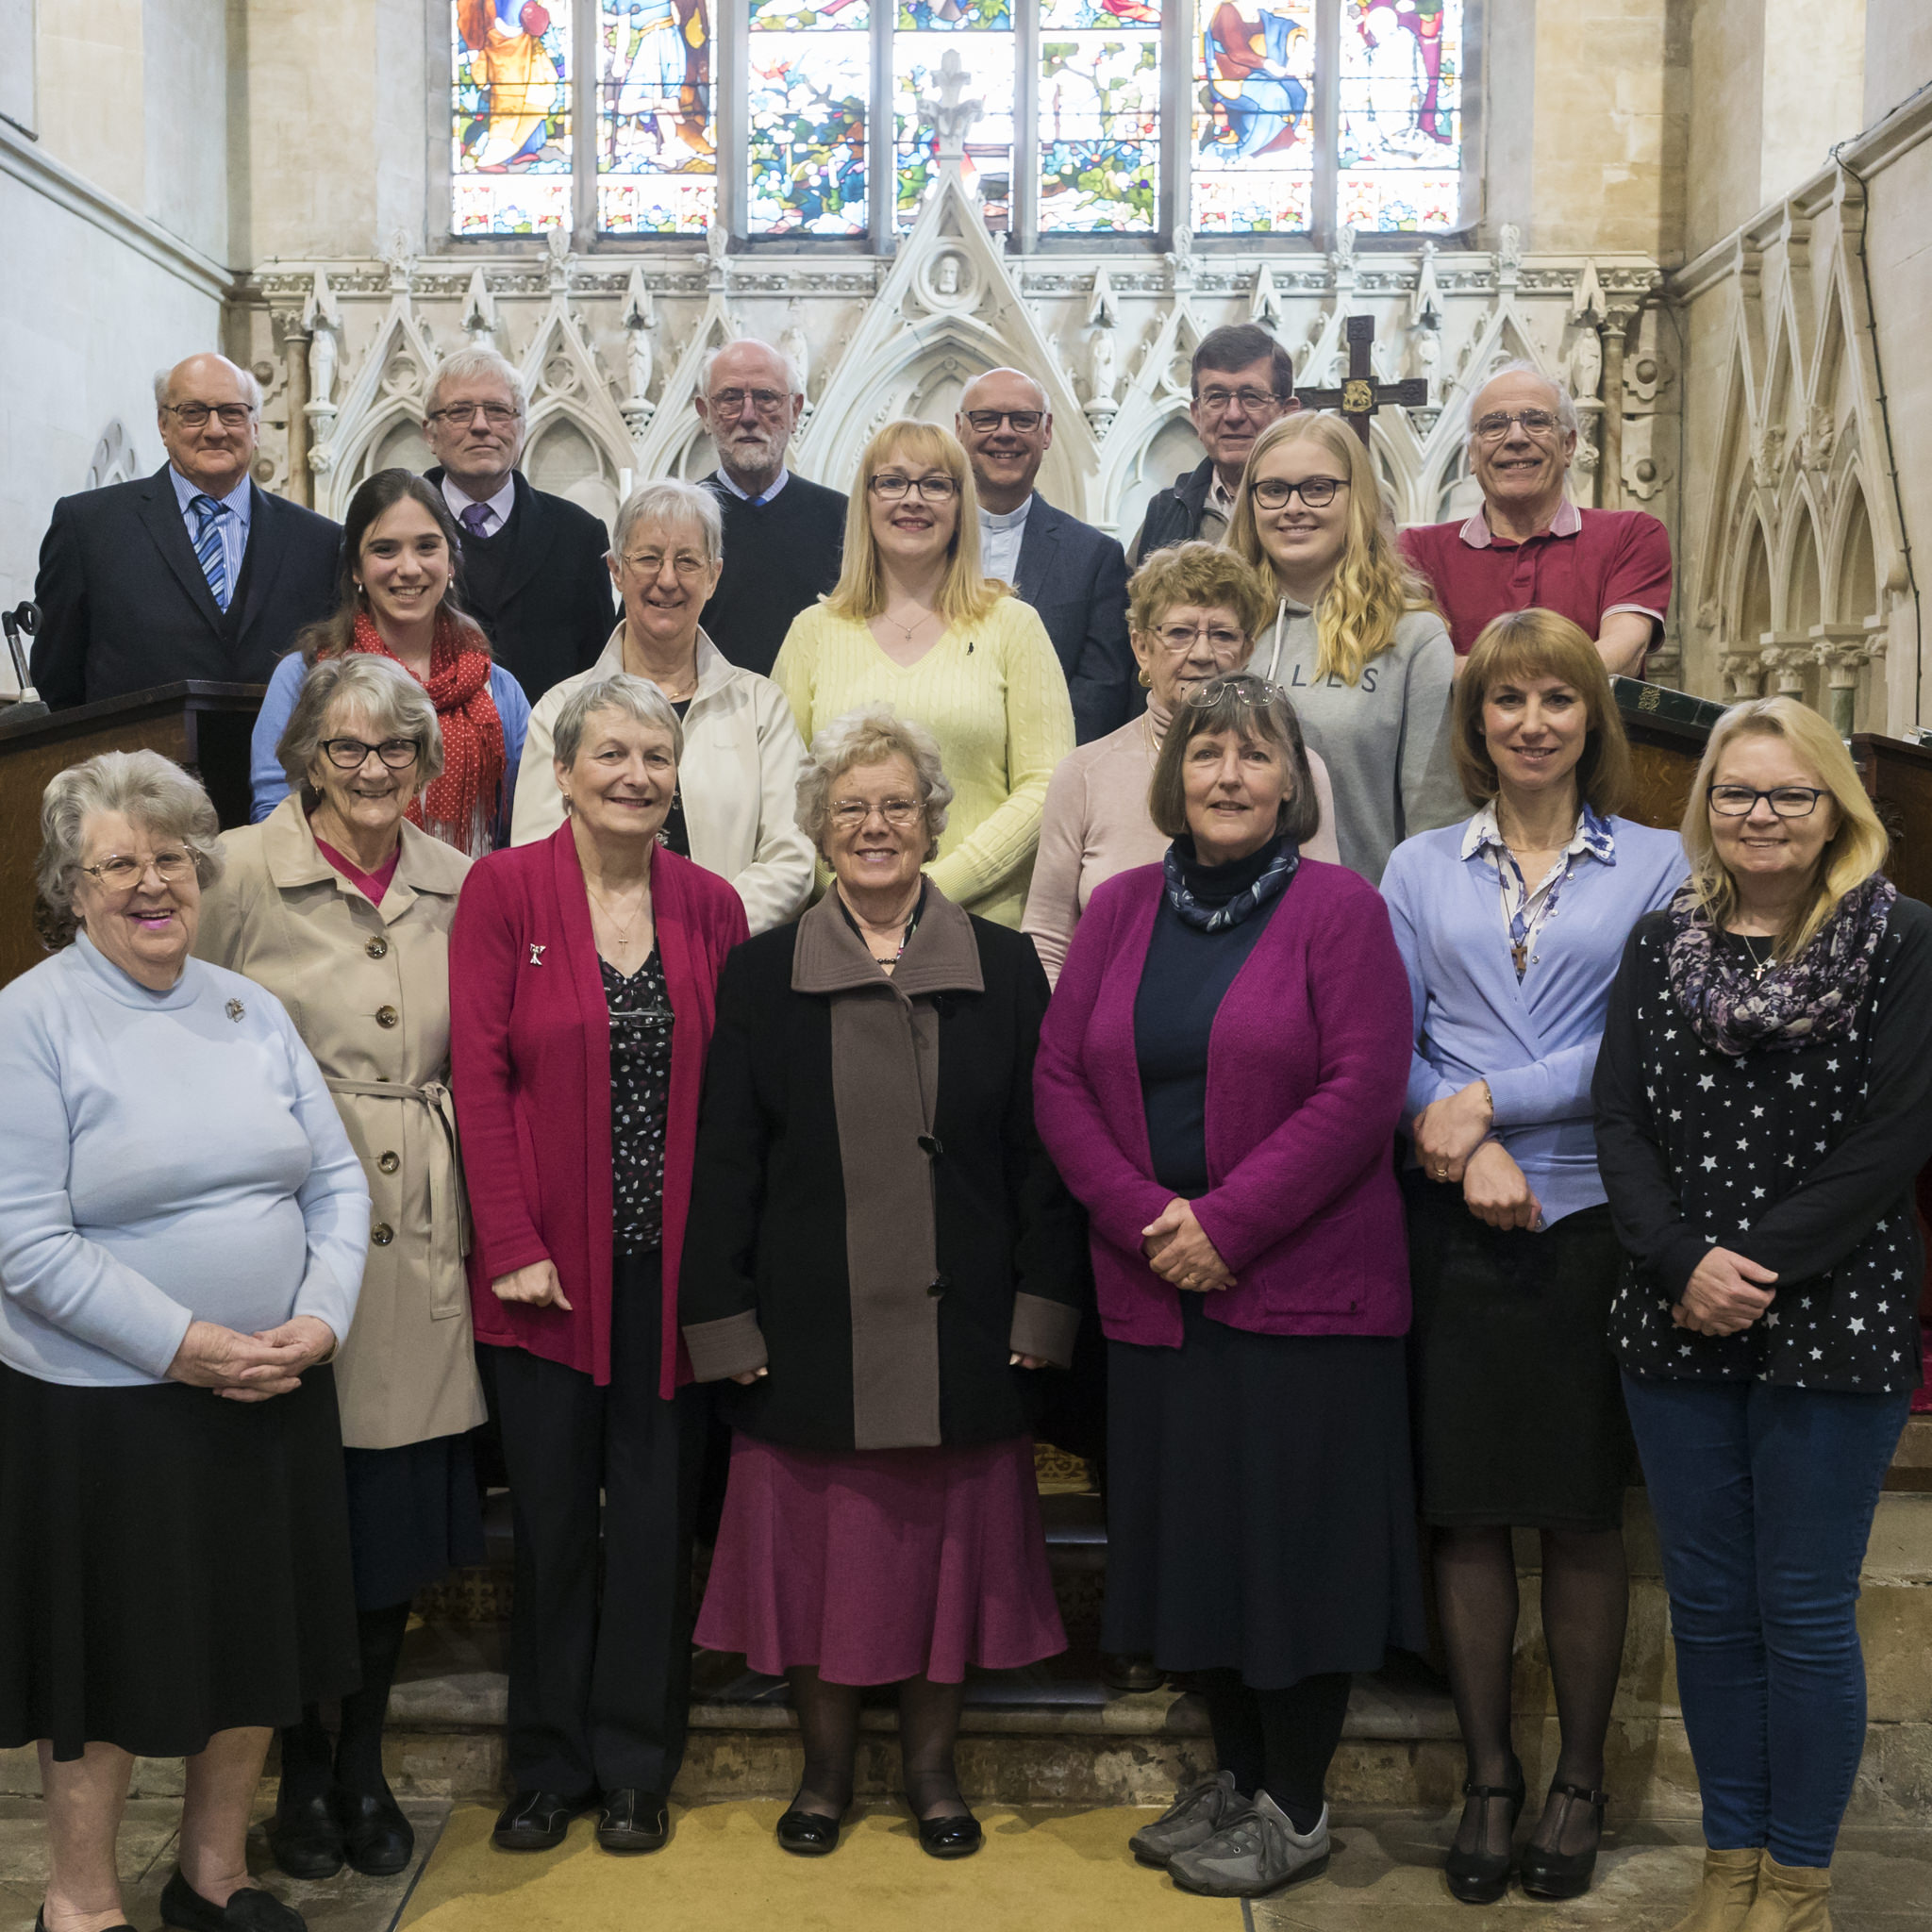 PCC Group Photo at St Mark's Church